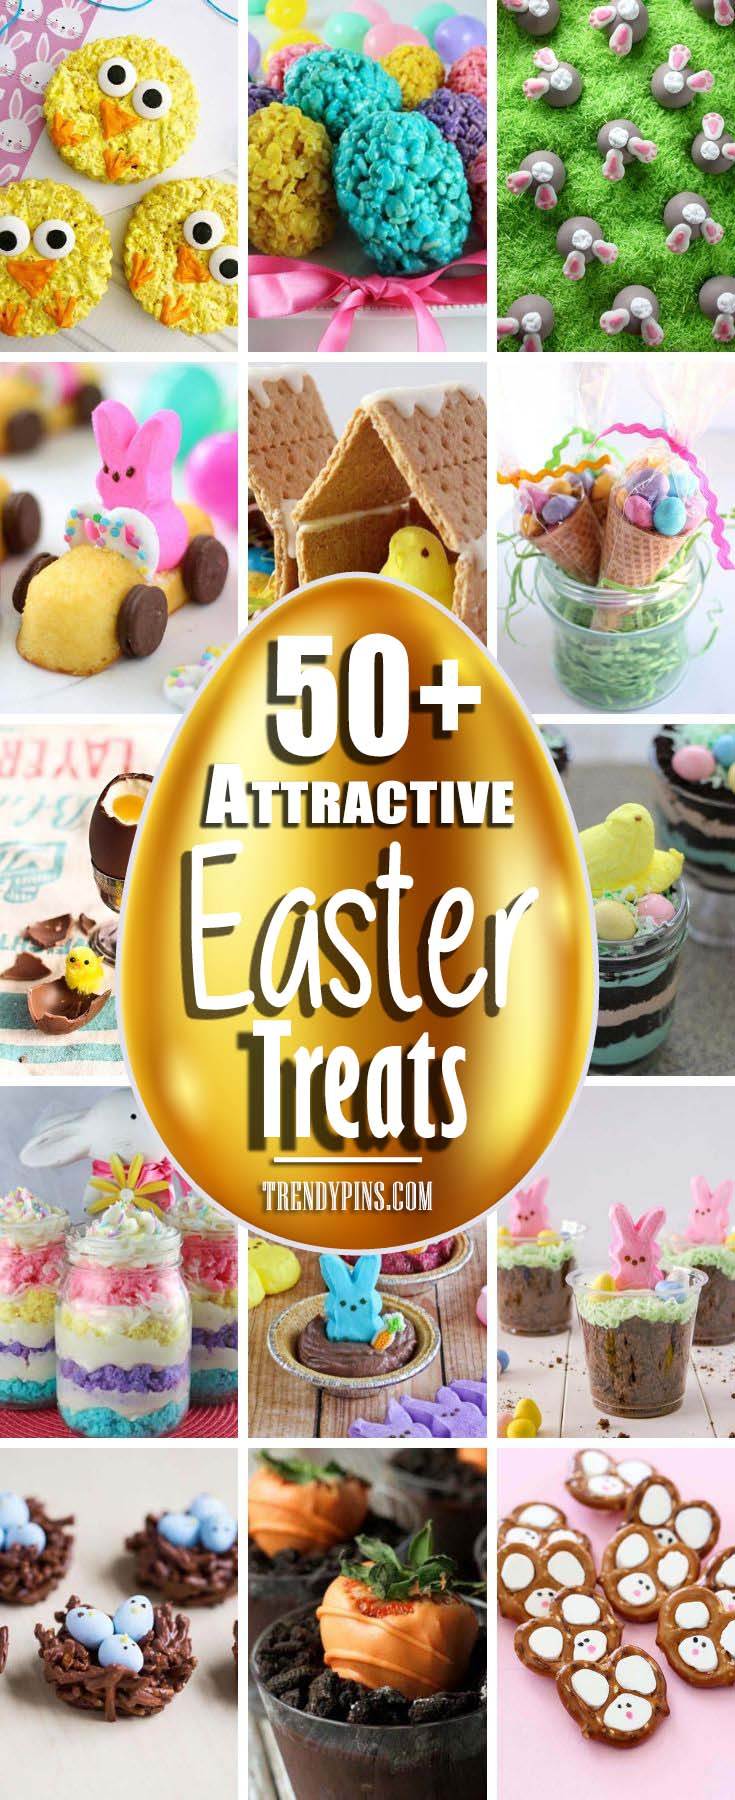 Chocolate and cookies are all treats that are often made and enjoyed at Easter time. Check out these delicious Easter treats. #Easter #treats #recipes #trendypins